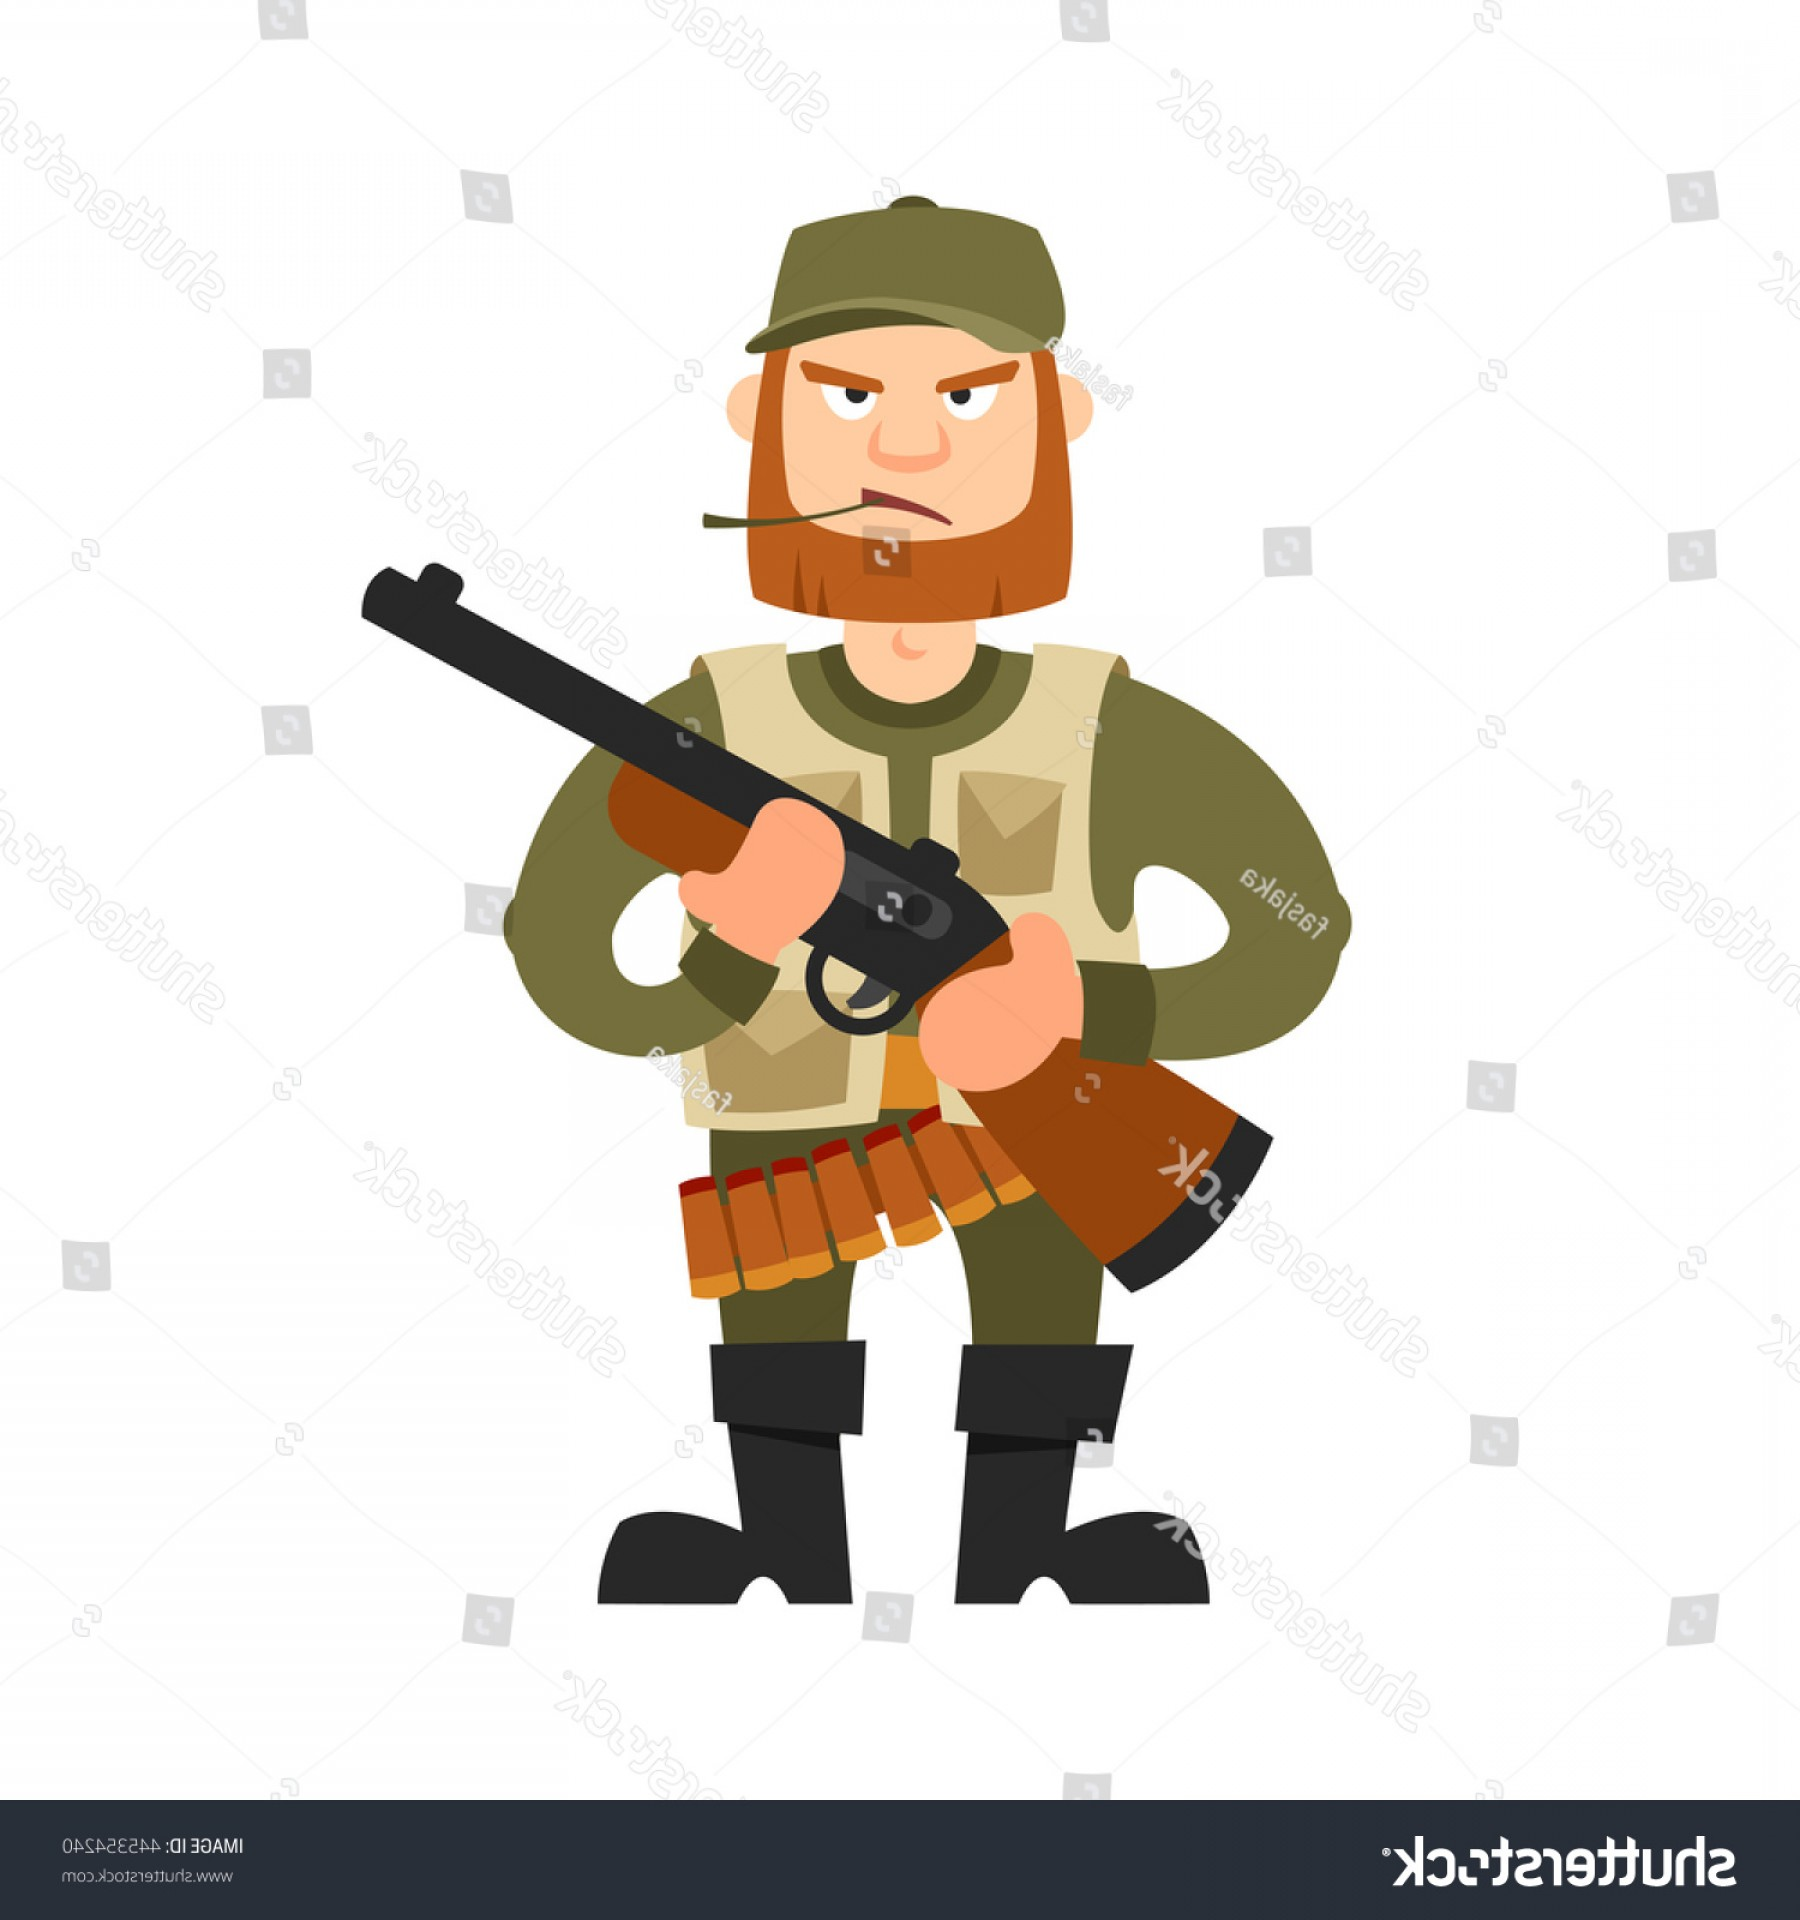 Vector Rifle And Boots: Hunter Illustration Isolated On White Background